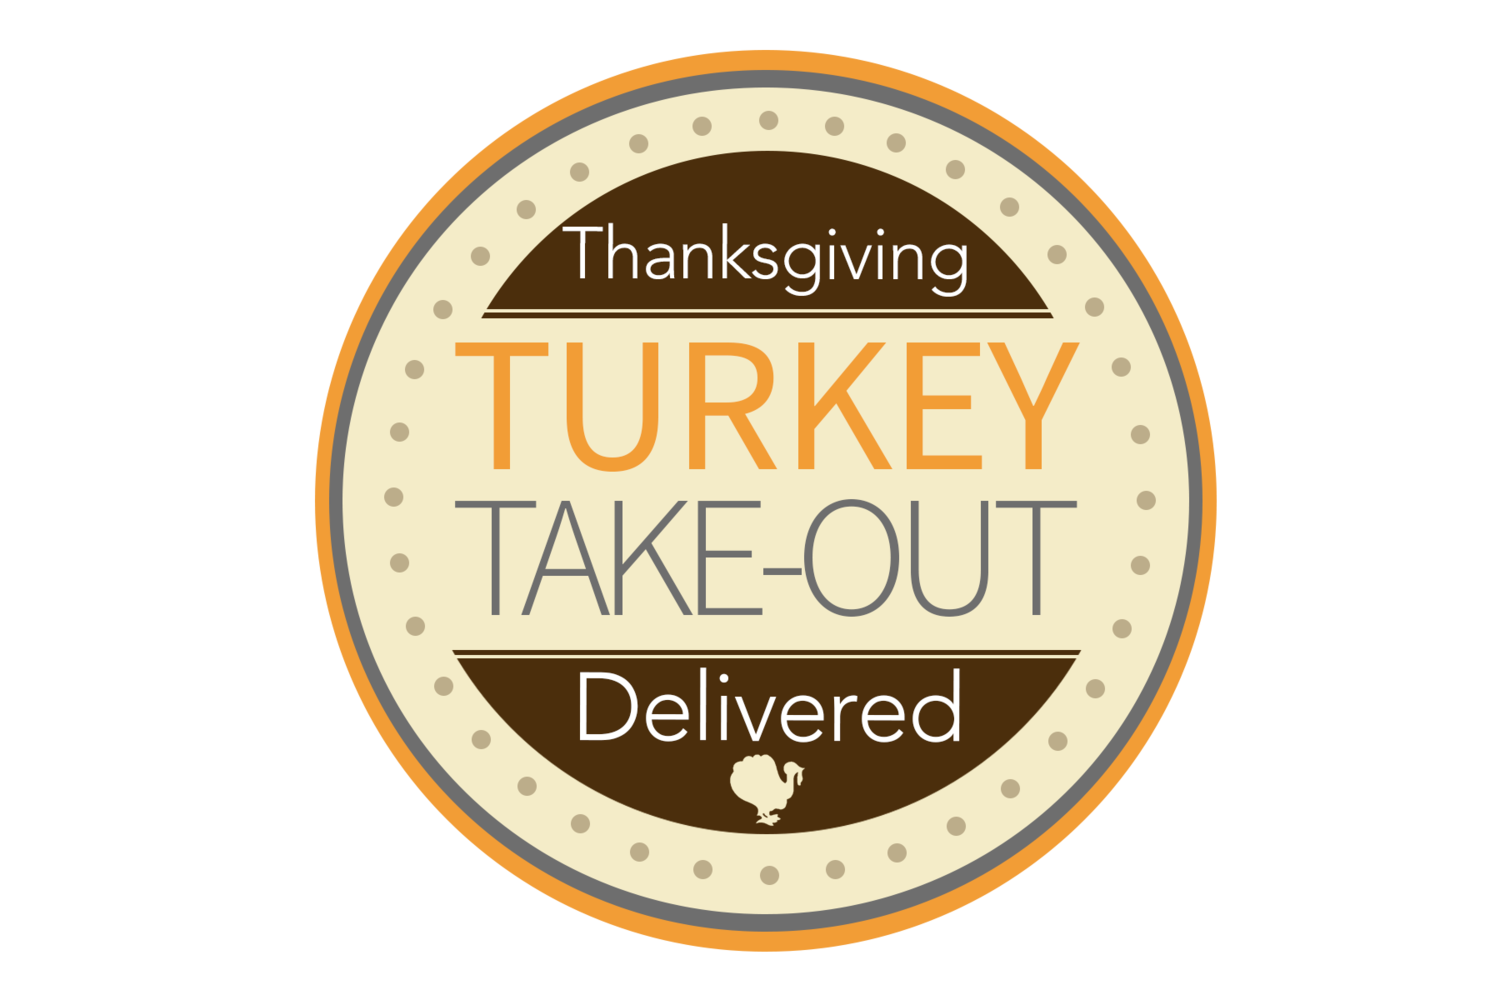 Turkey Take- Out